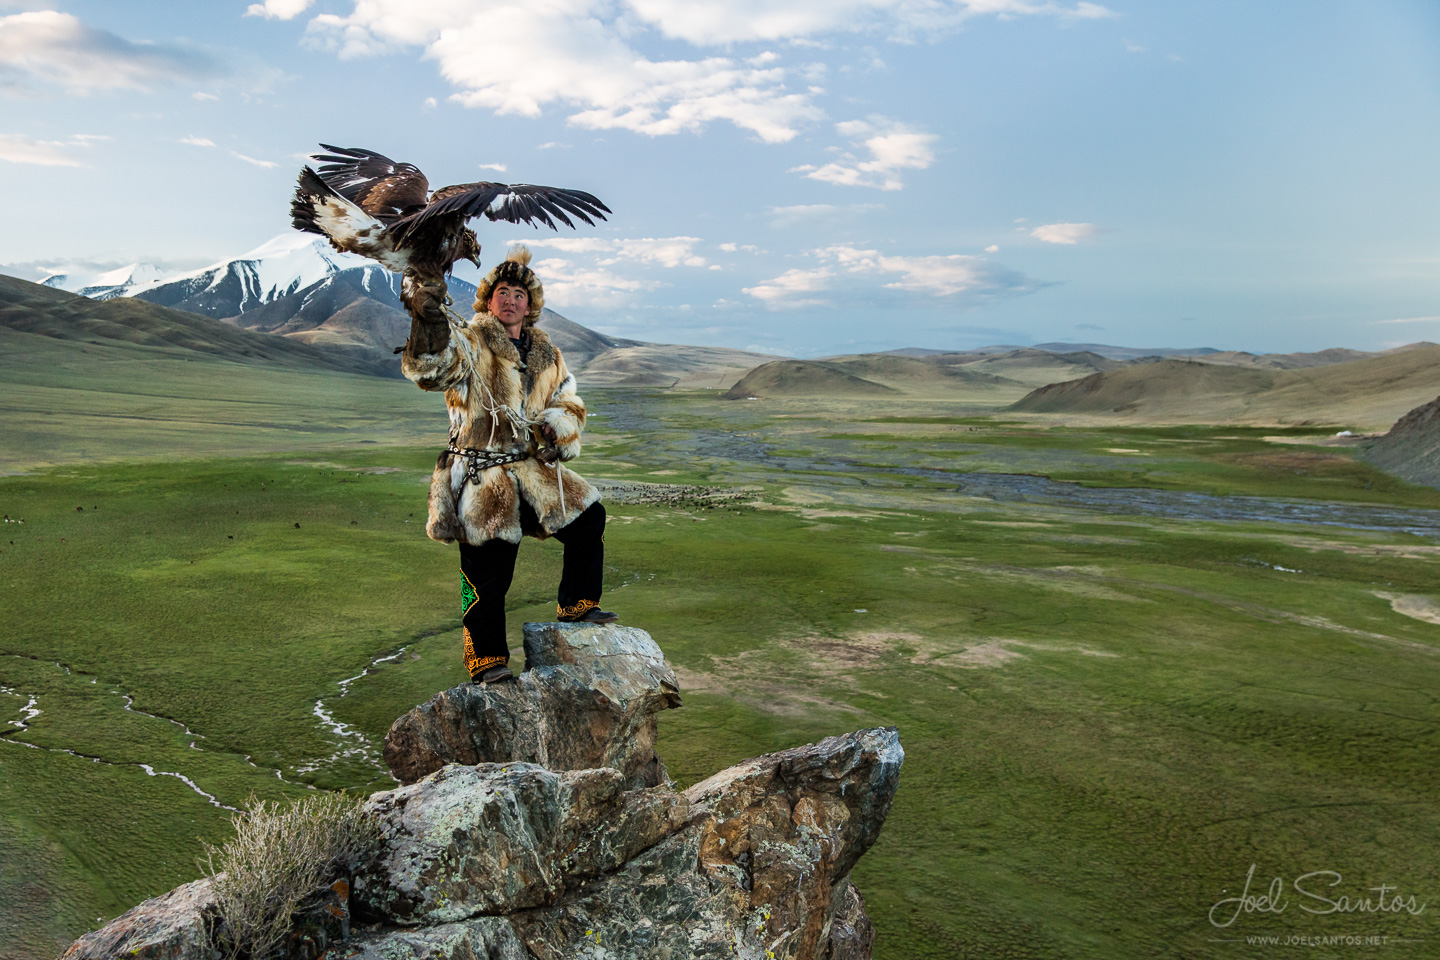 NOMAD HUNTERS - Eagle Hunters, the Tsaatan (Reindeer people) and KAZAKH Nomad MIGRATIONS